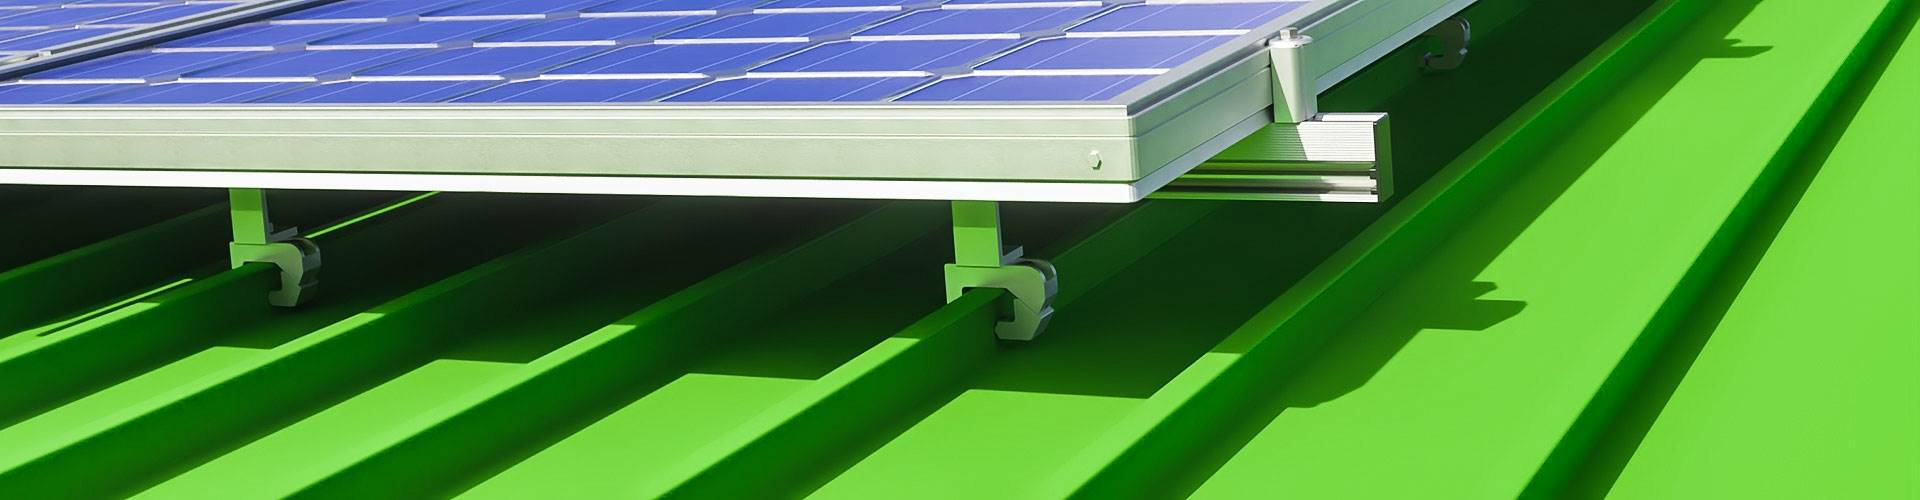 Solar Panel Mounting Systems by Aceclamp®